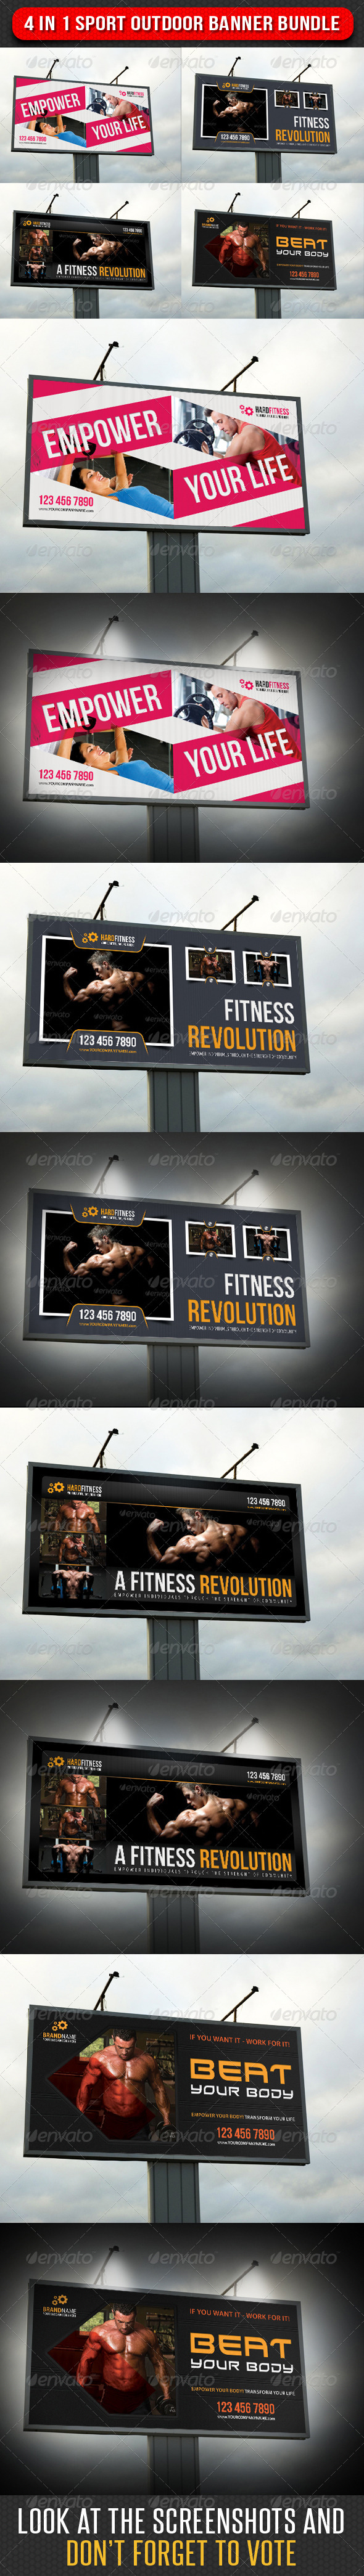 4 in 1 Sport Outdoor Banner Bundle 04 - Signage Print Templates